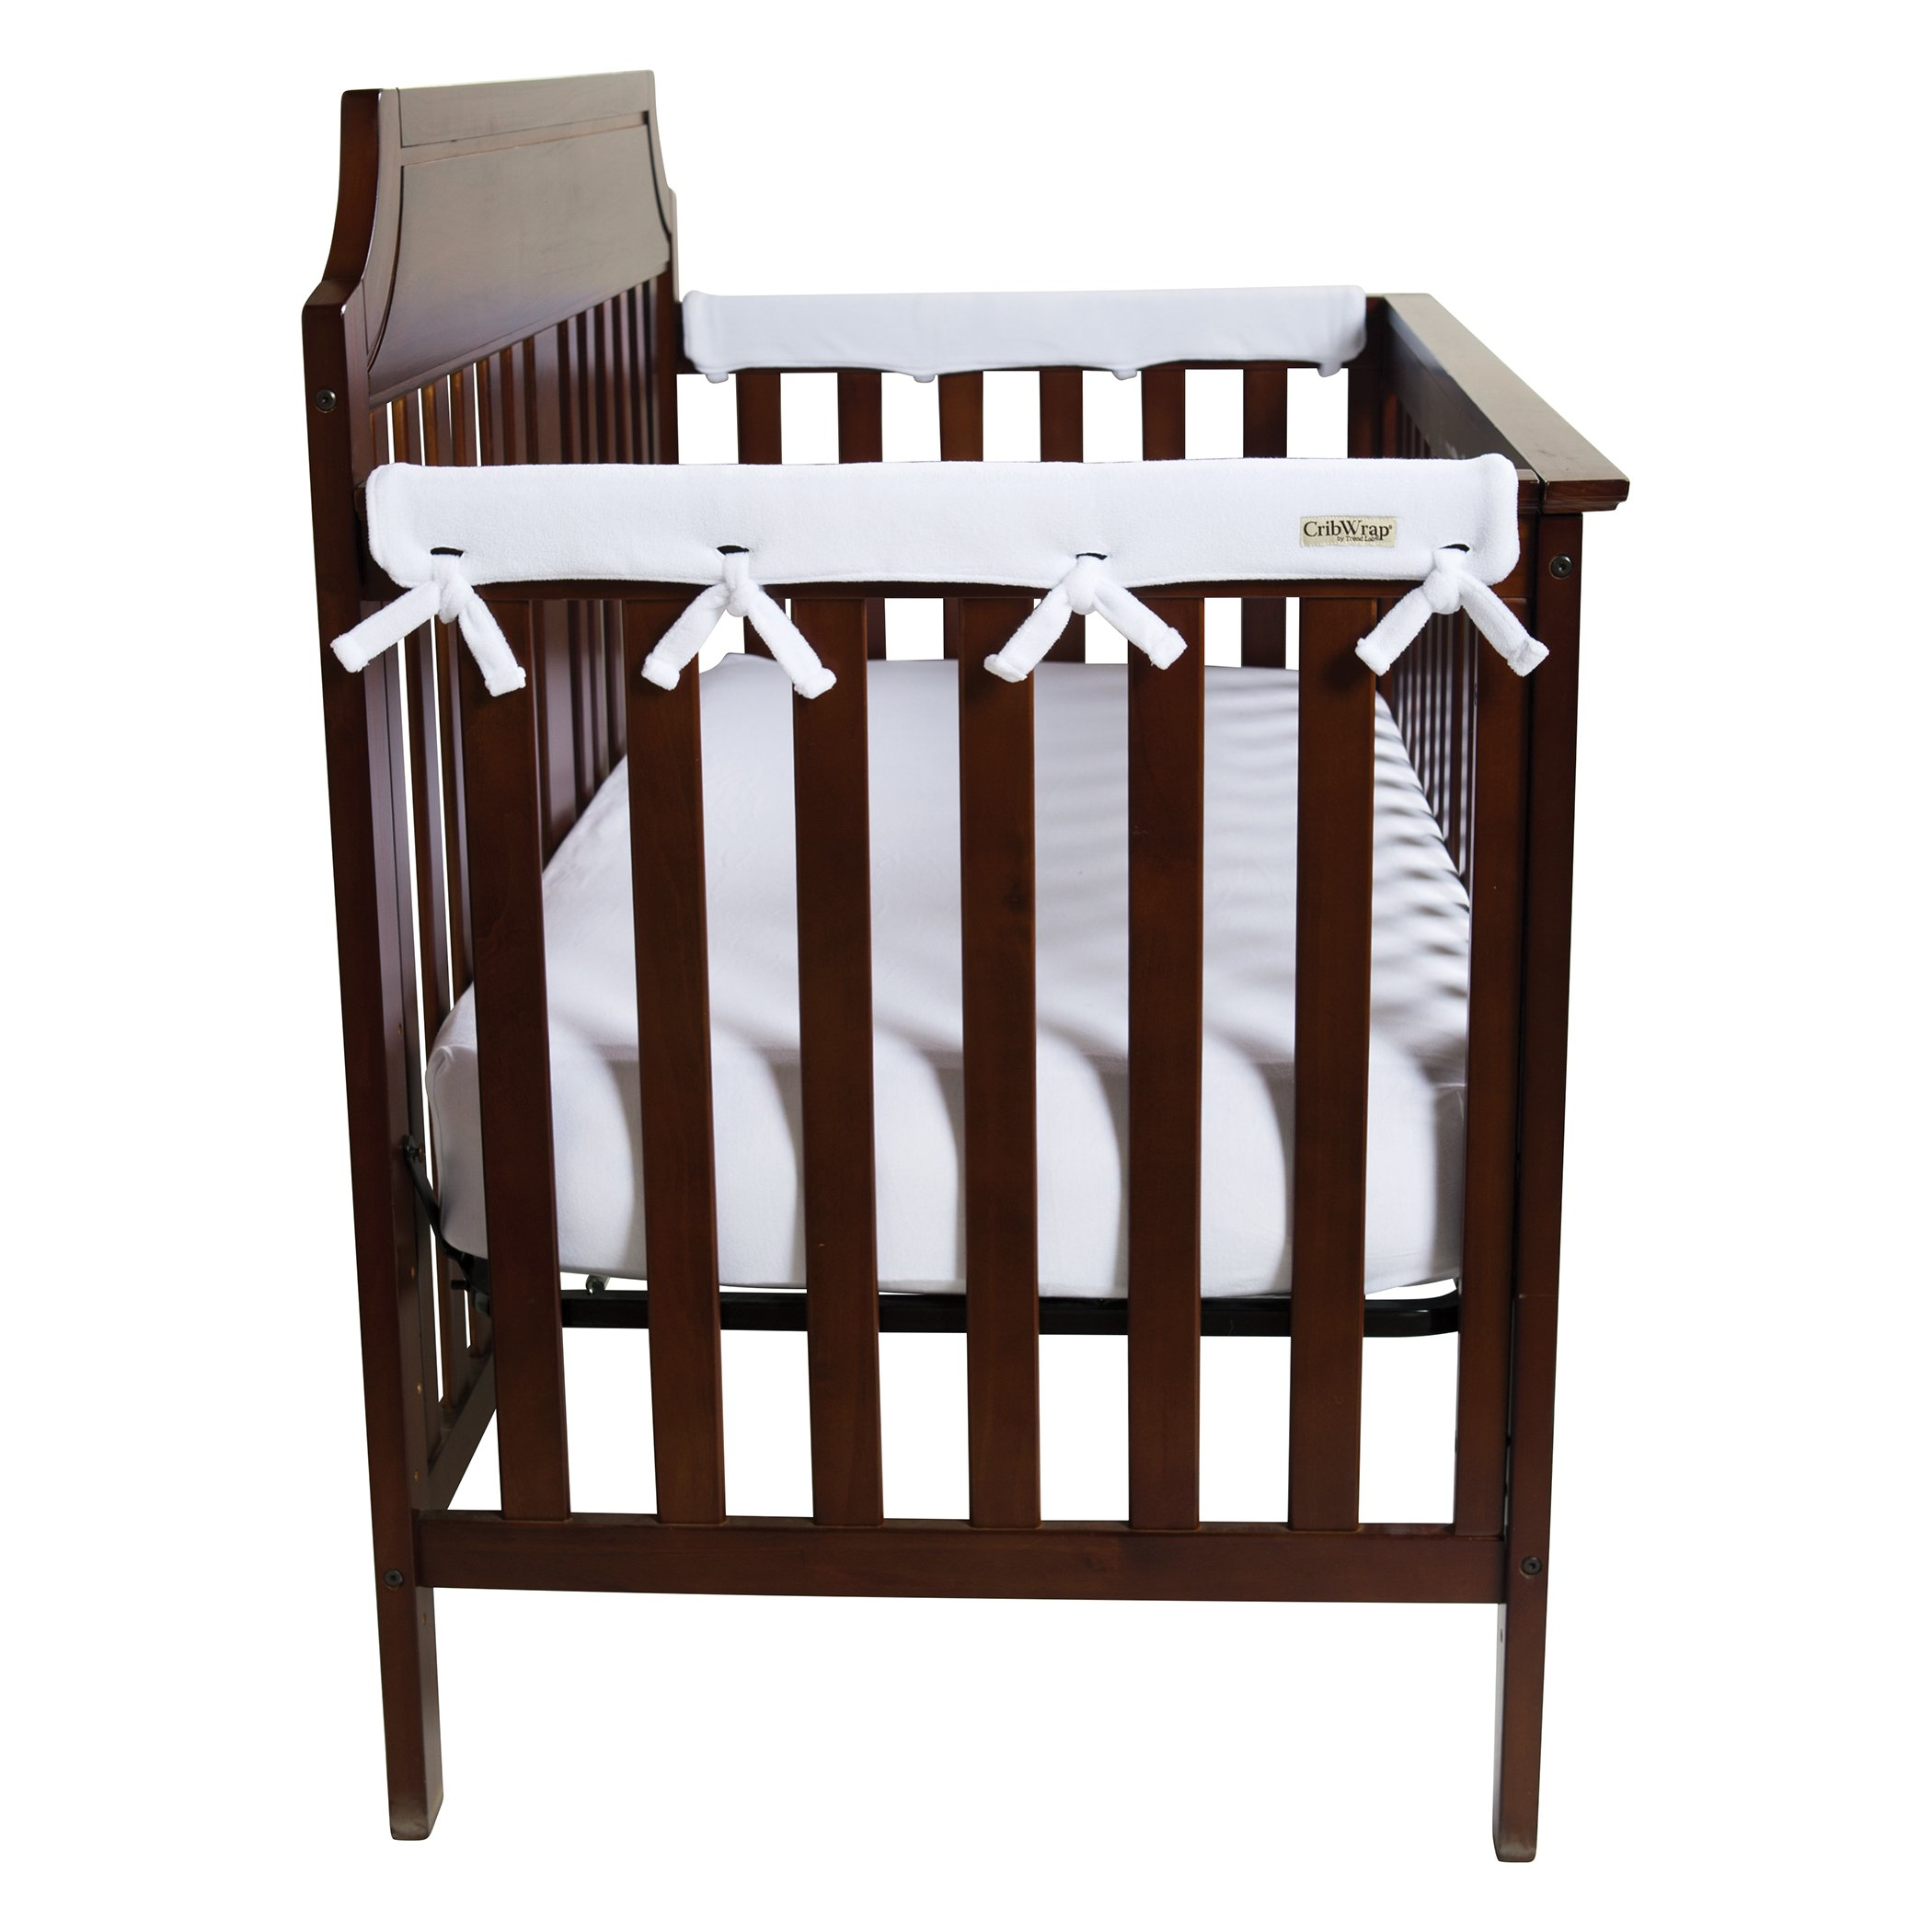 "Trend Lab Waterproof CribWrap Rail Cover - For Narrow Side Crib Rails Made to Fit Rails up to 8"" Around. Pack of 2!"